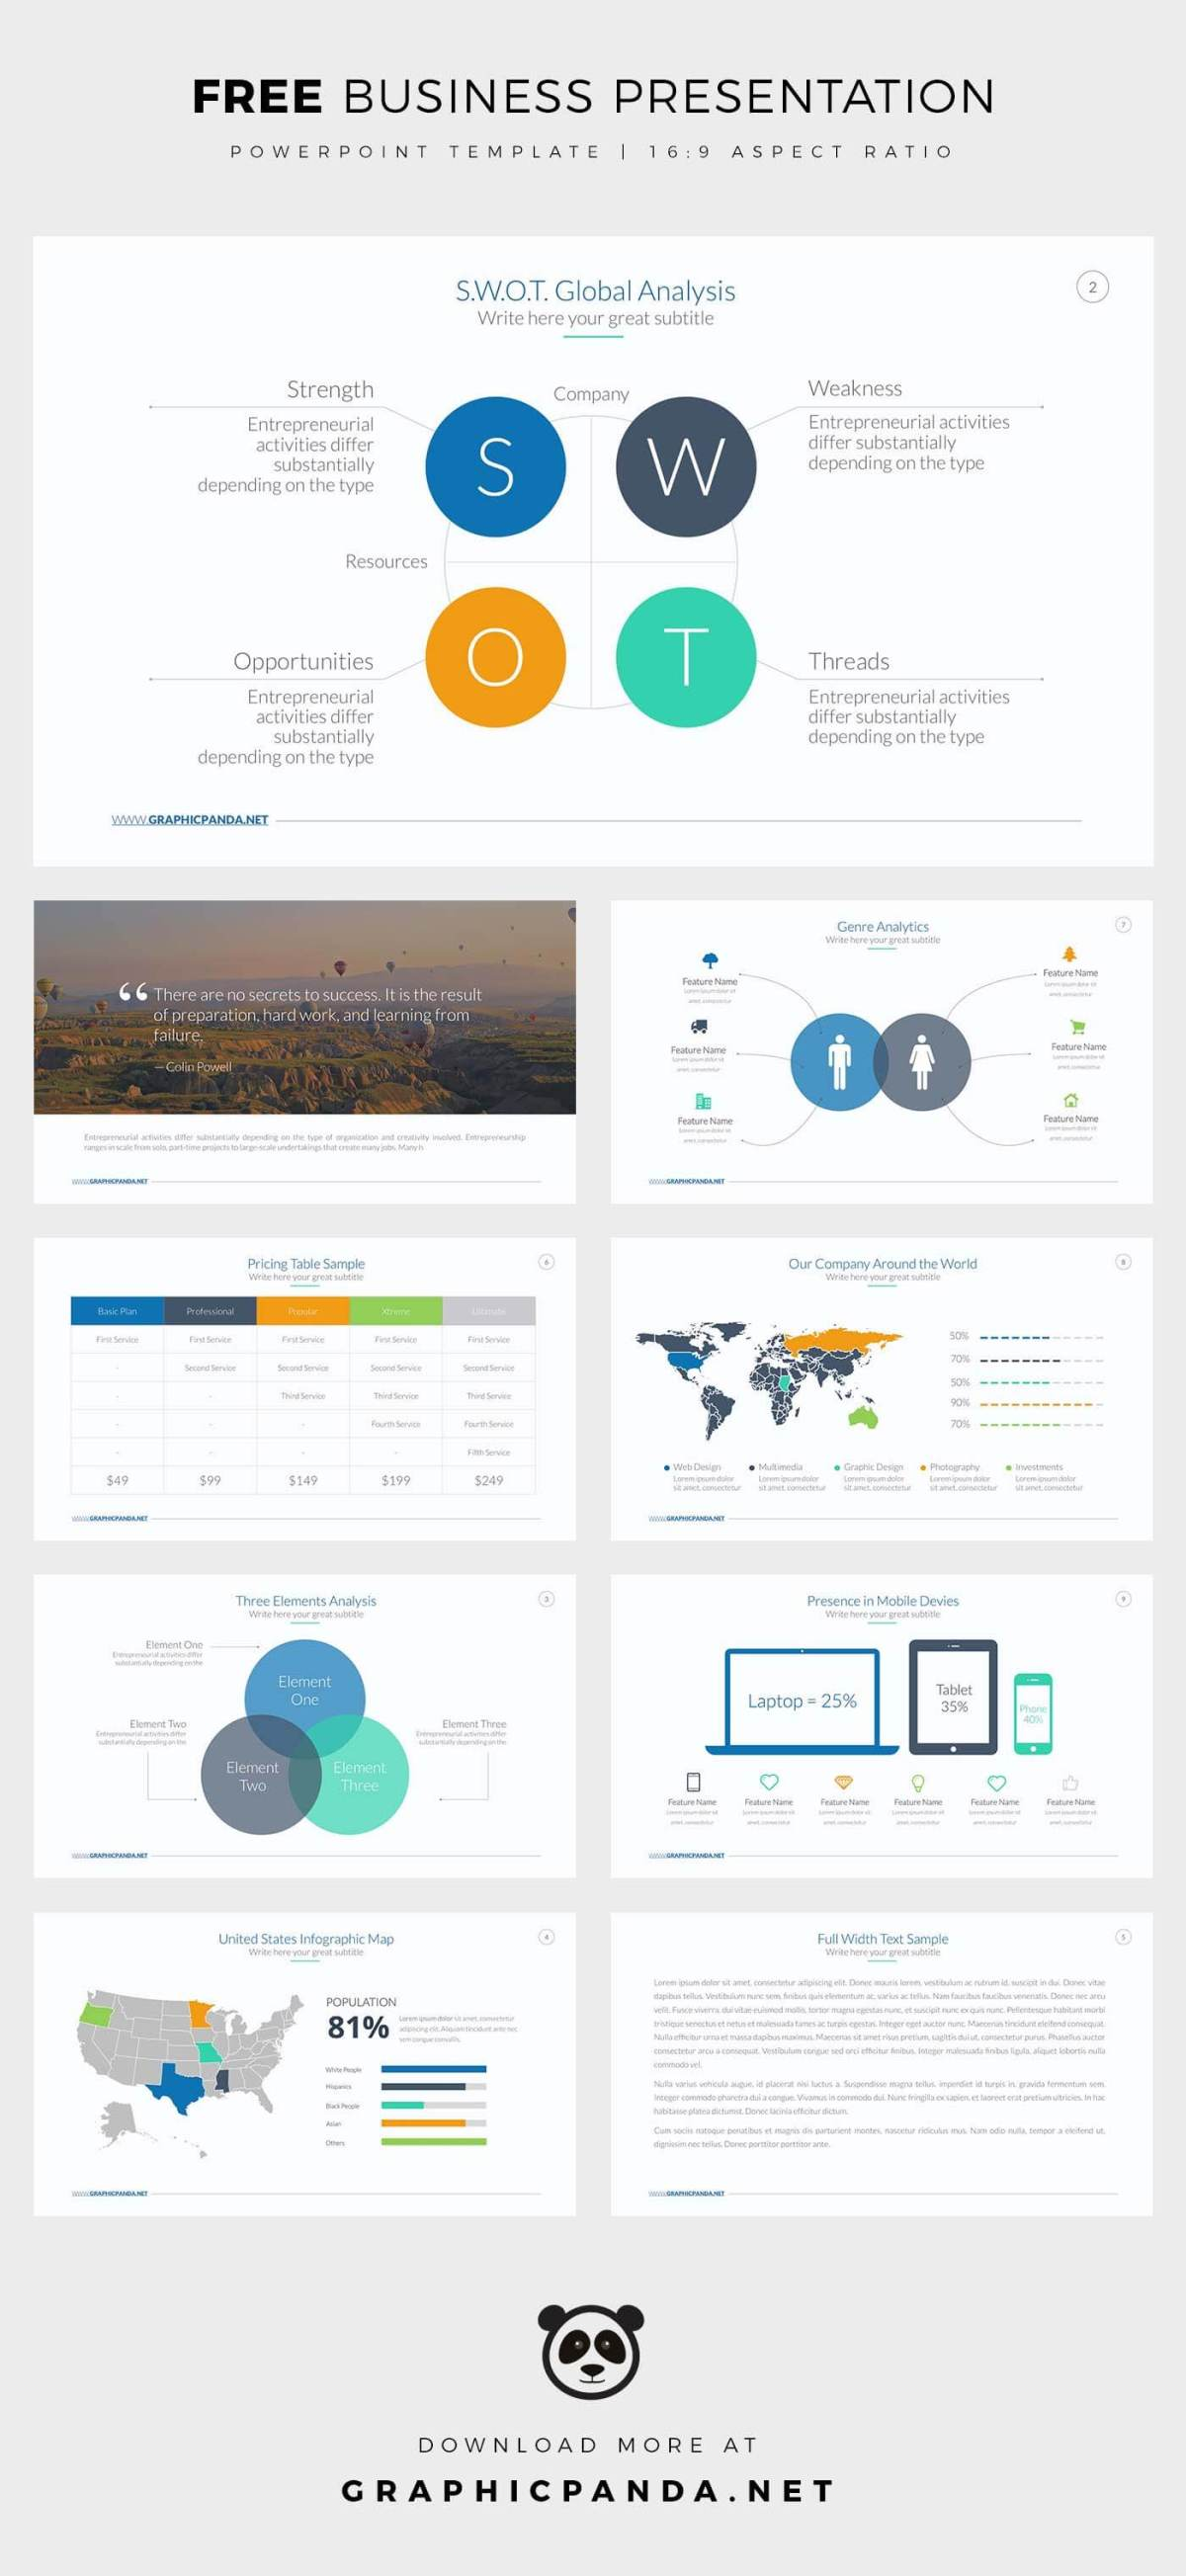 Free business powerpoint templates professional and easy to edit free business powerpoint template accmission Image collections